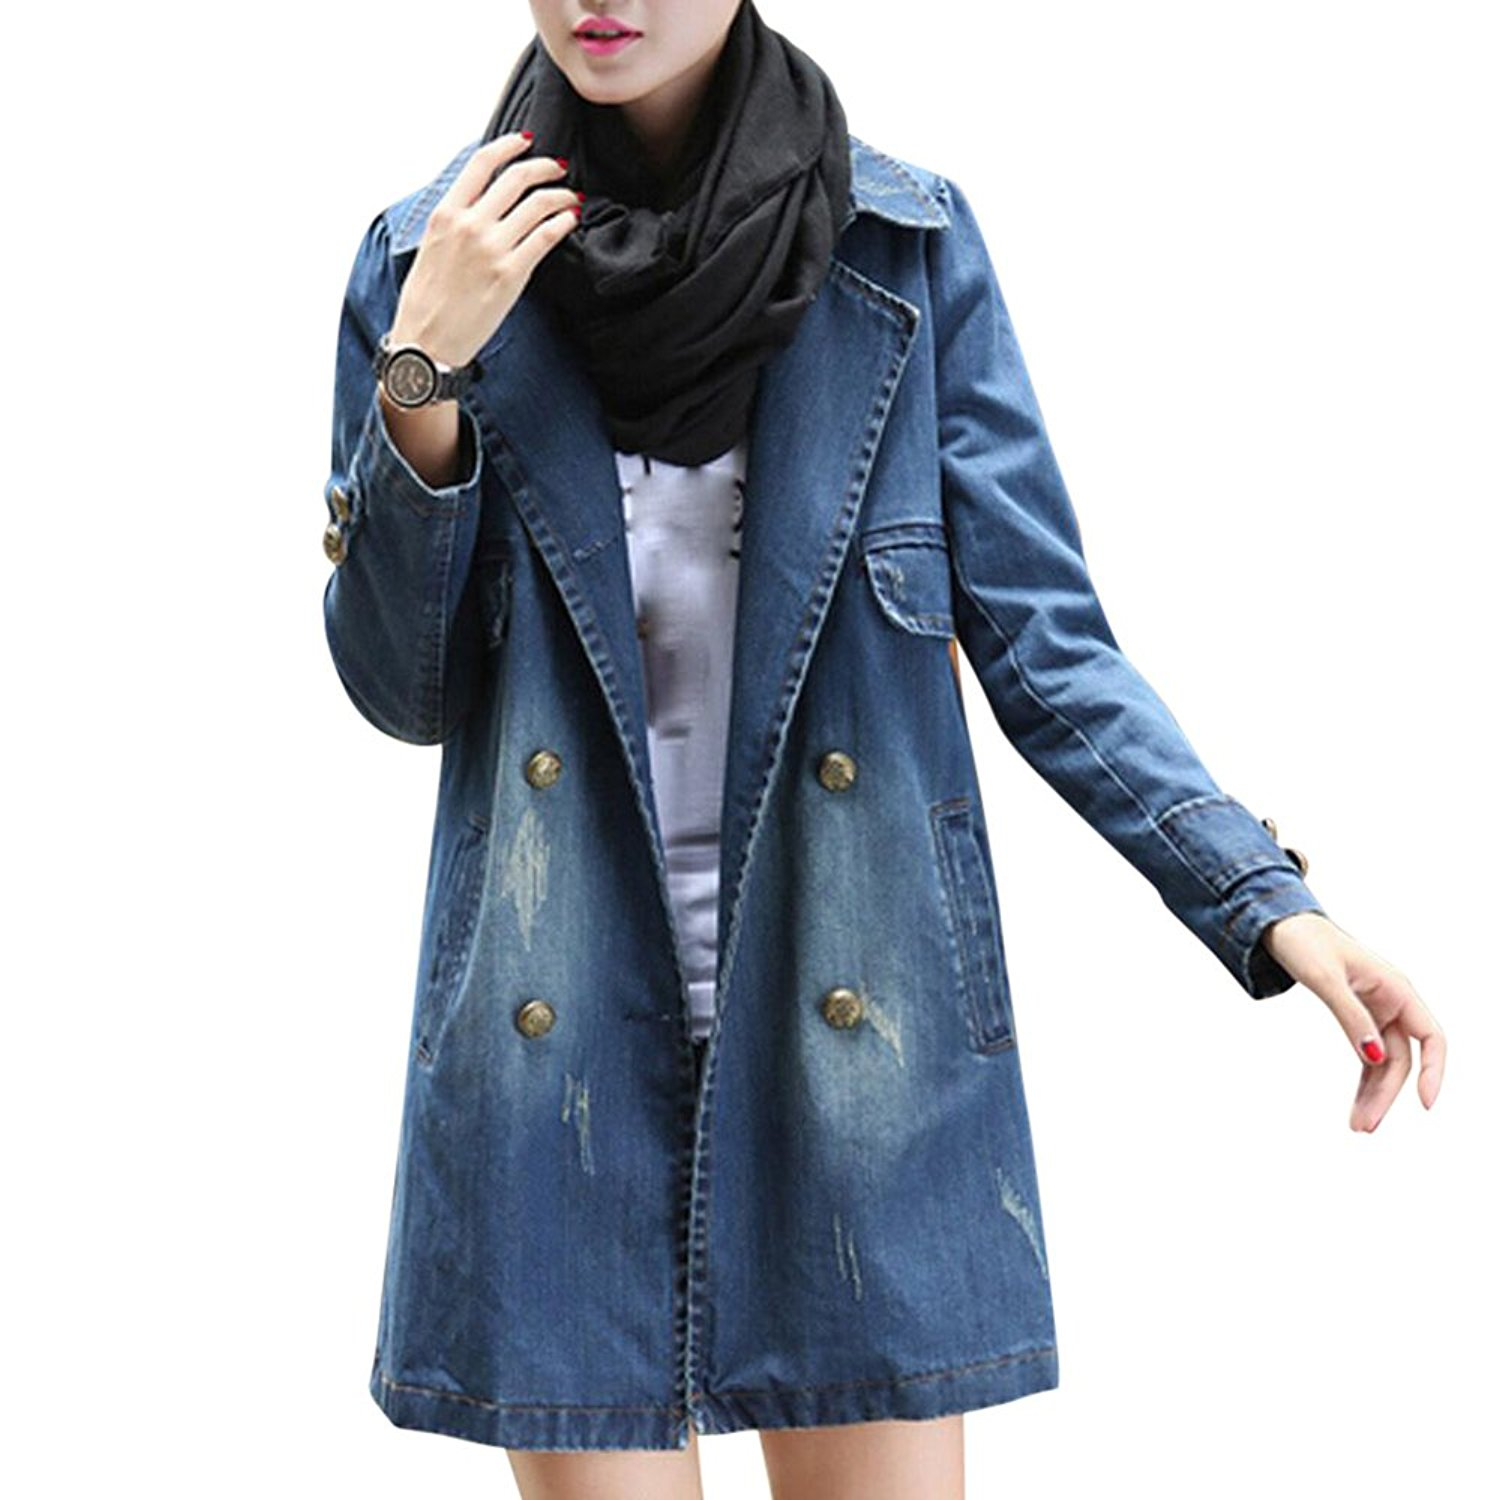 Women Jacket, Gillberry Women Casual Long Sleeve Denim Jacket Long Jean Coat Outwear Overcoat